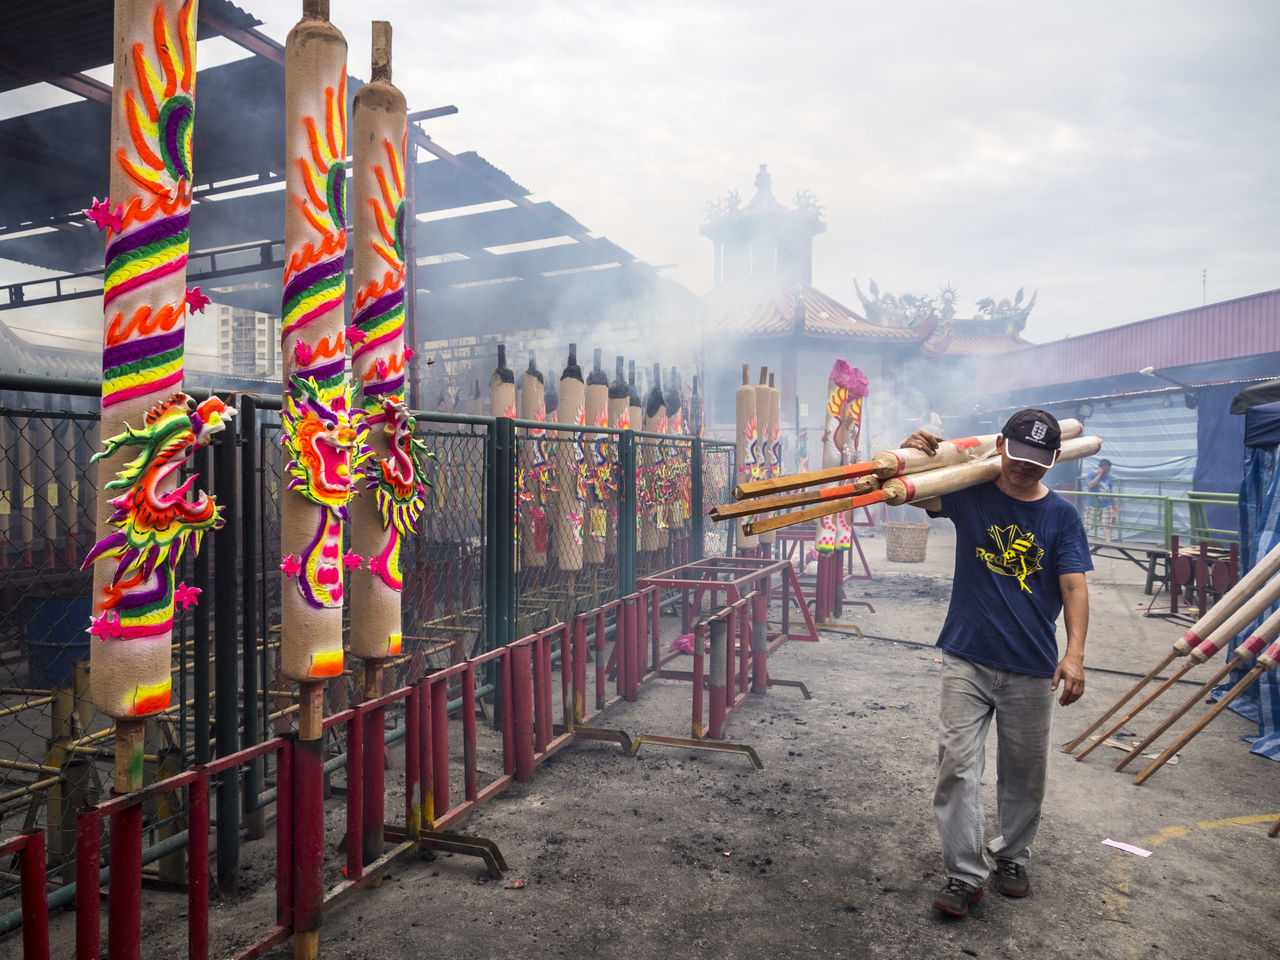 A man carrying large joss sticks on his shoulder at a Chinese temple Adult Burning Chinese Chinese Temple Full Length Joss Sticks Man Nine Emperor Festival Nine Emperor Gods Festival One Person Outdoors Smoke Smoke - Physical Structure Smoky The Photojournalist - 2017 EyeEm Awards